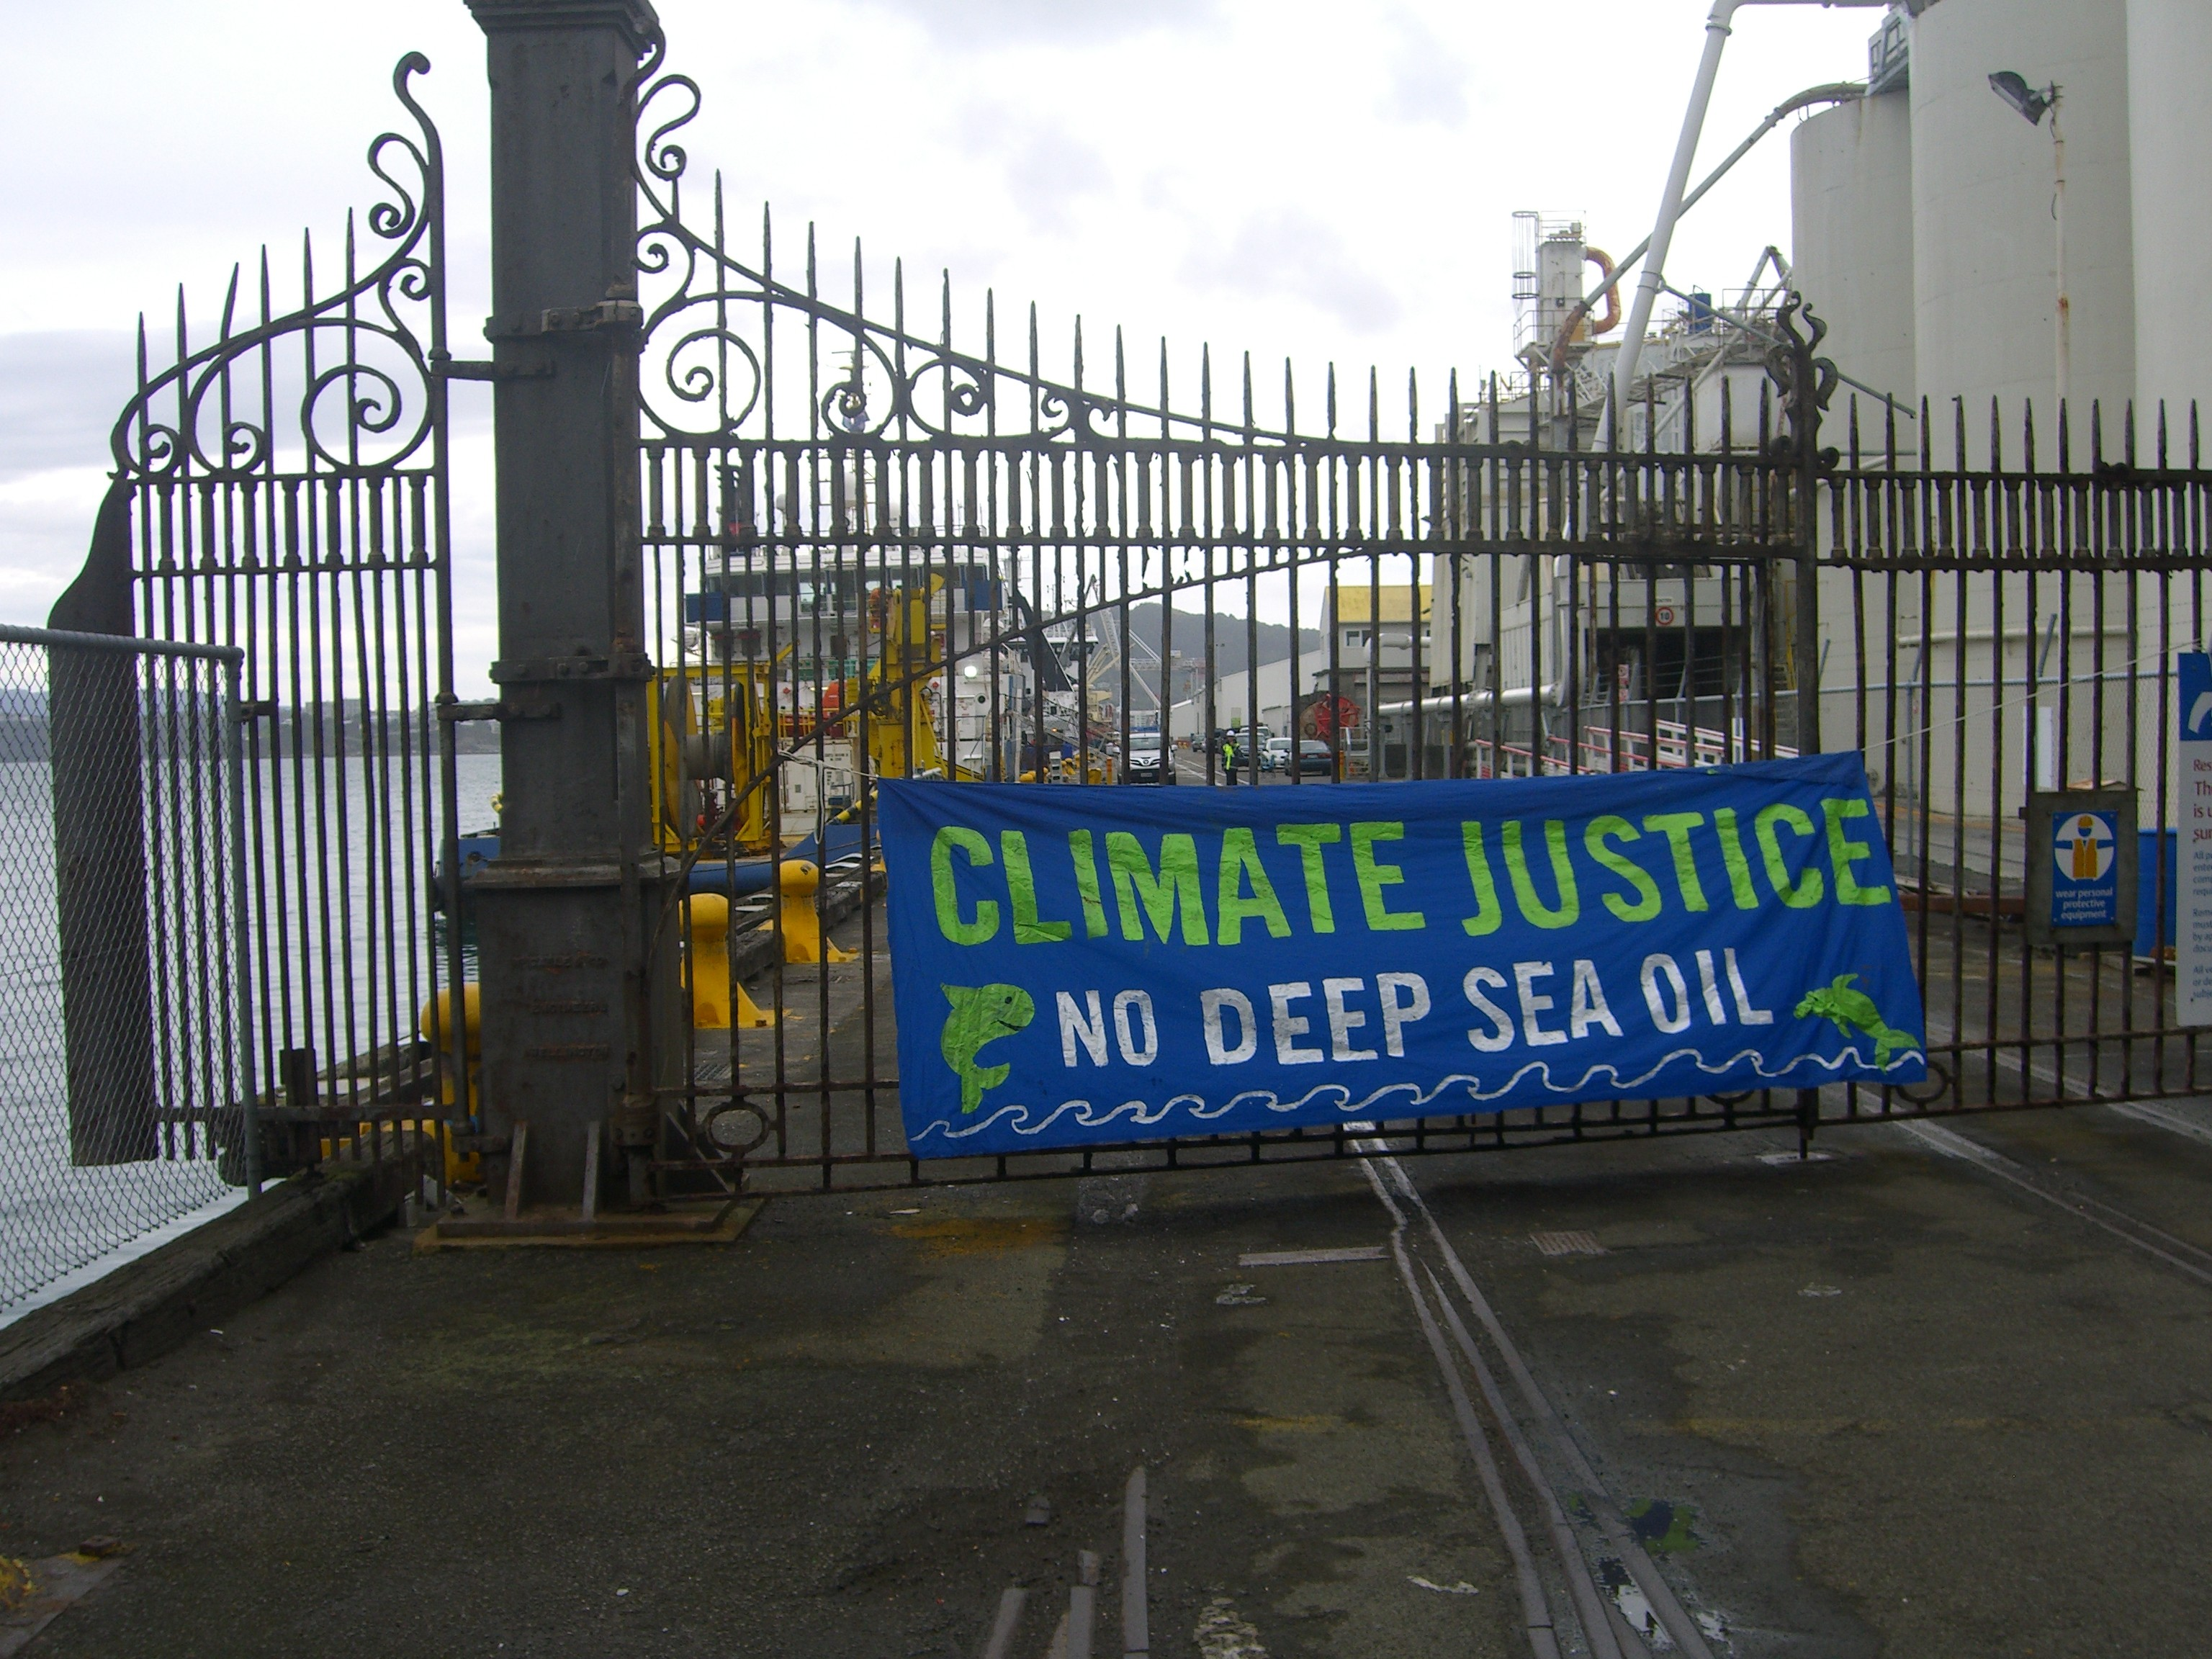 A message of climate justice to the Maria G oil ship